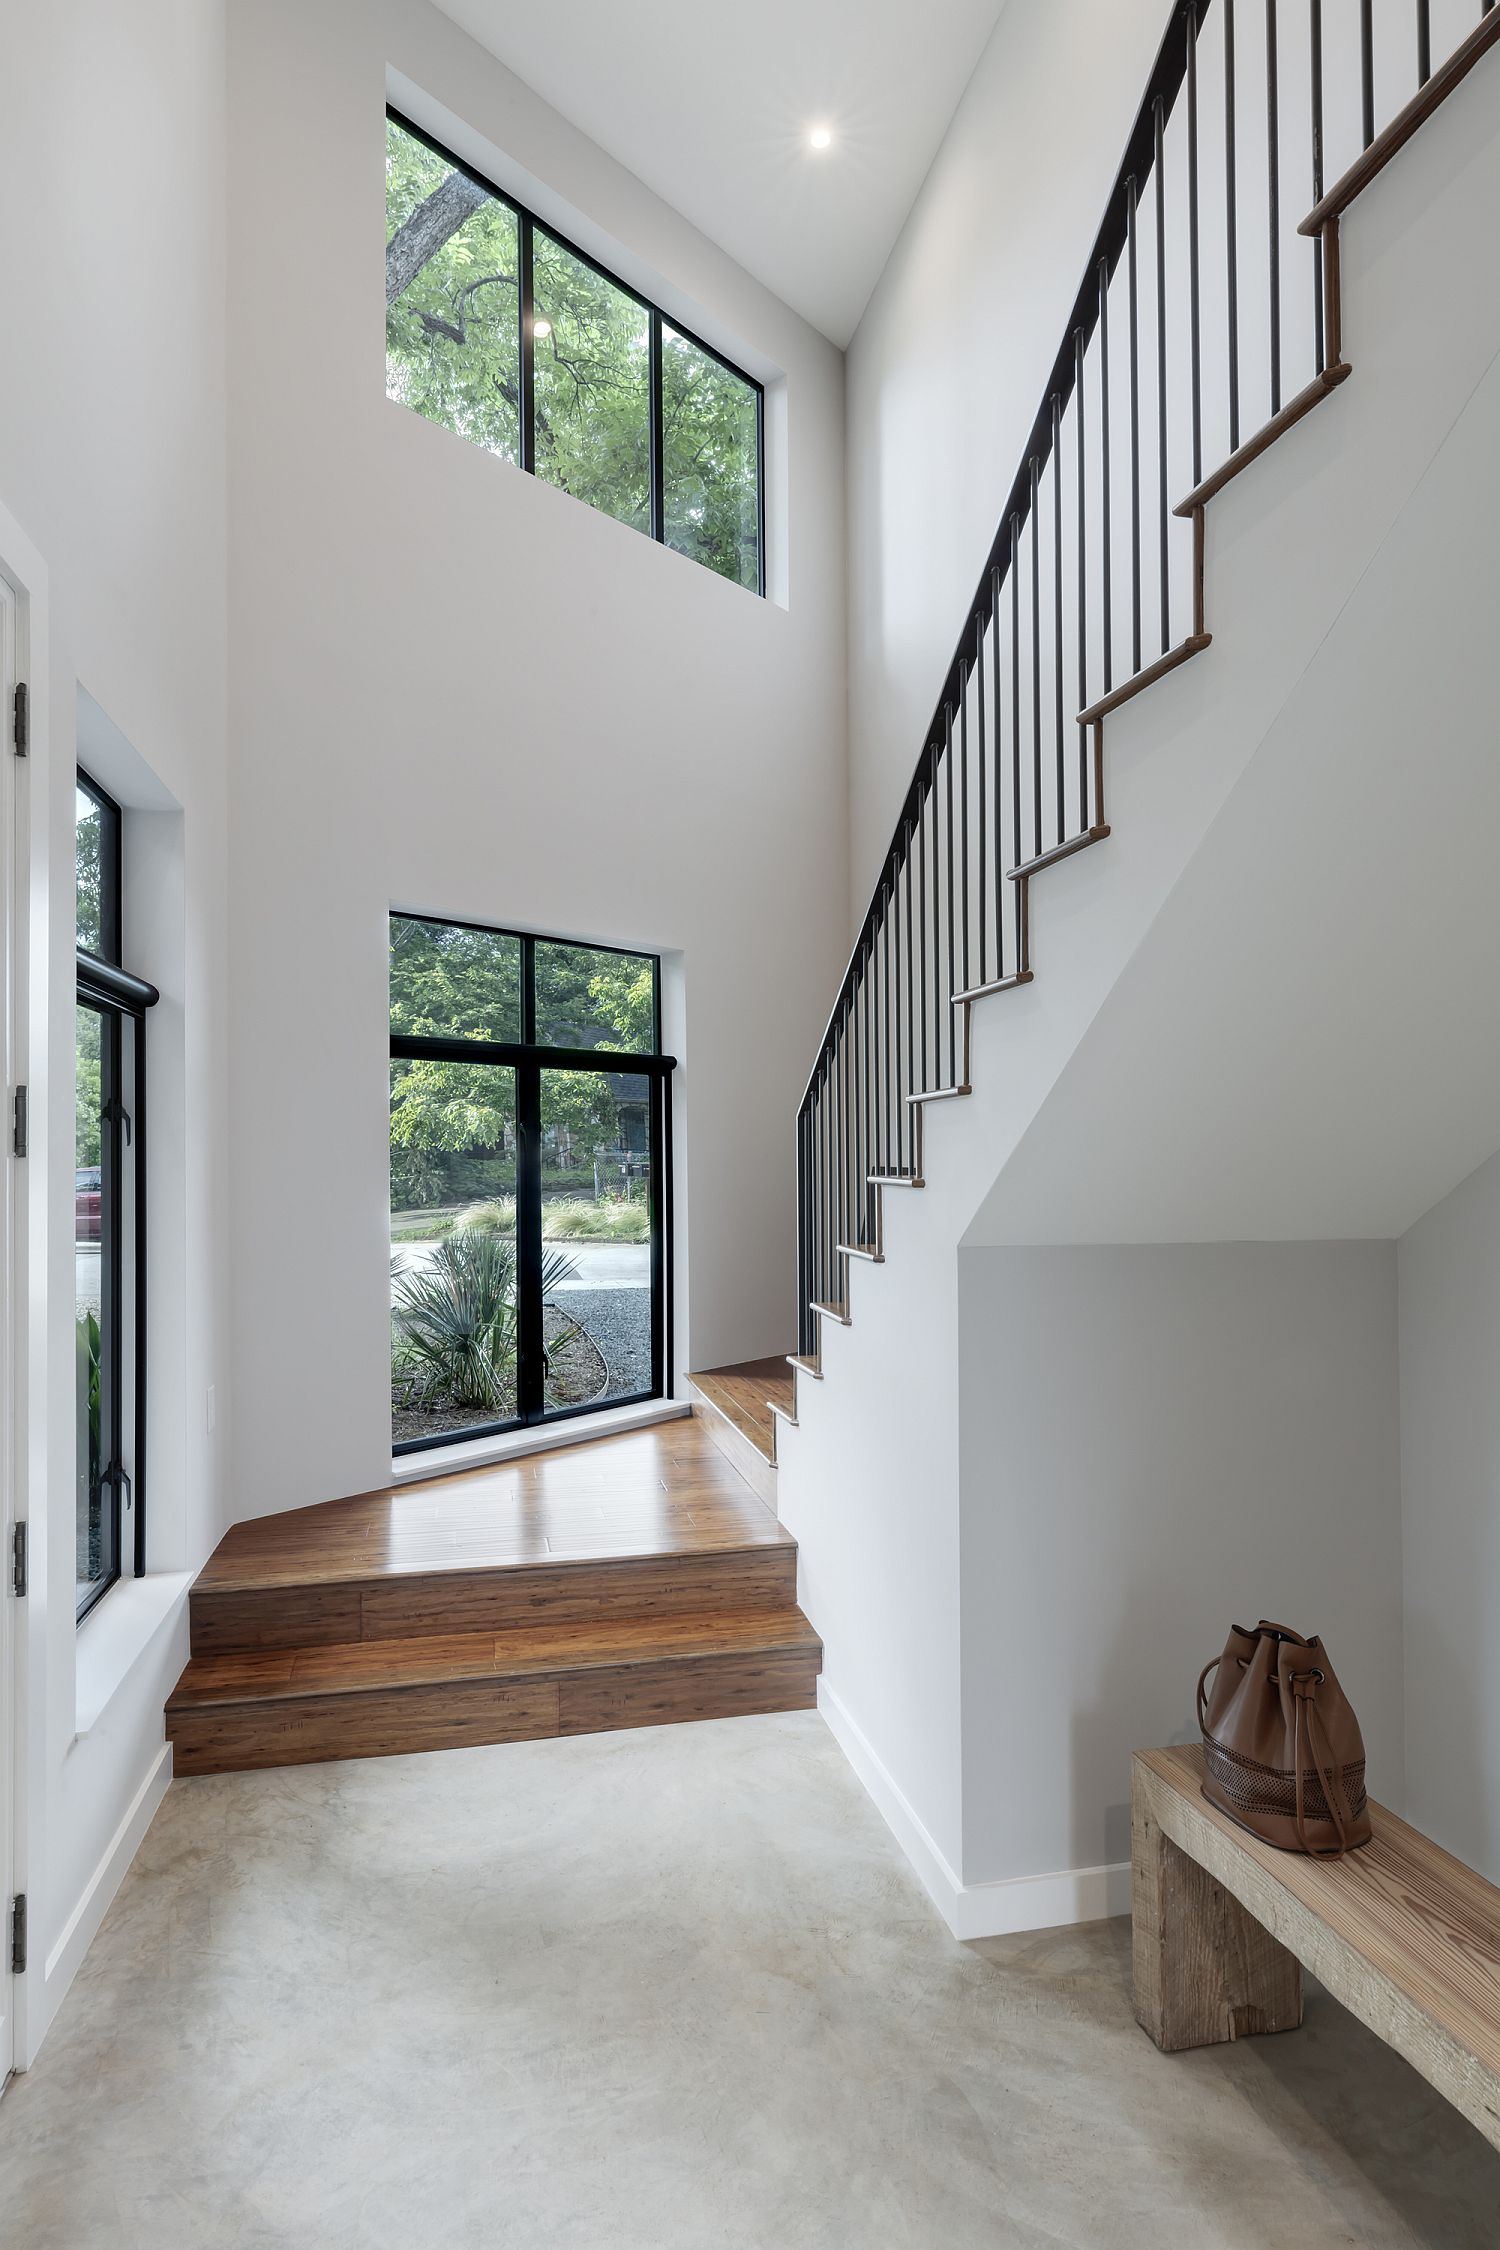 Traditional-staircase-leading-to-the-upper-level-of-the-house